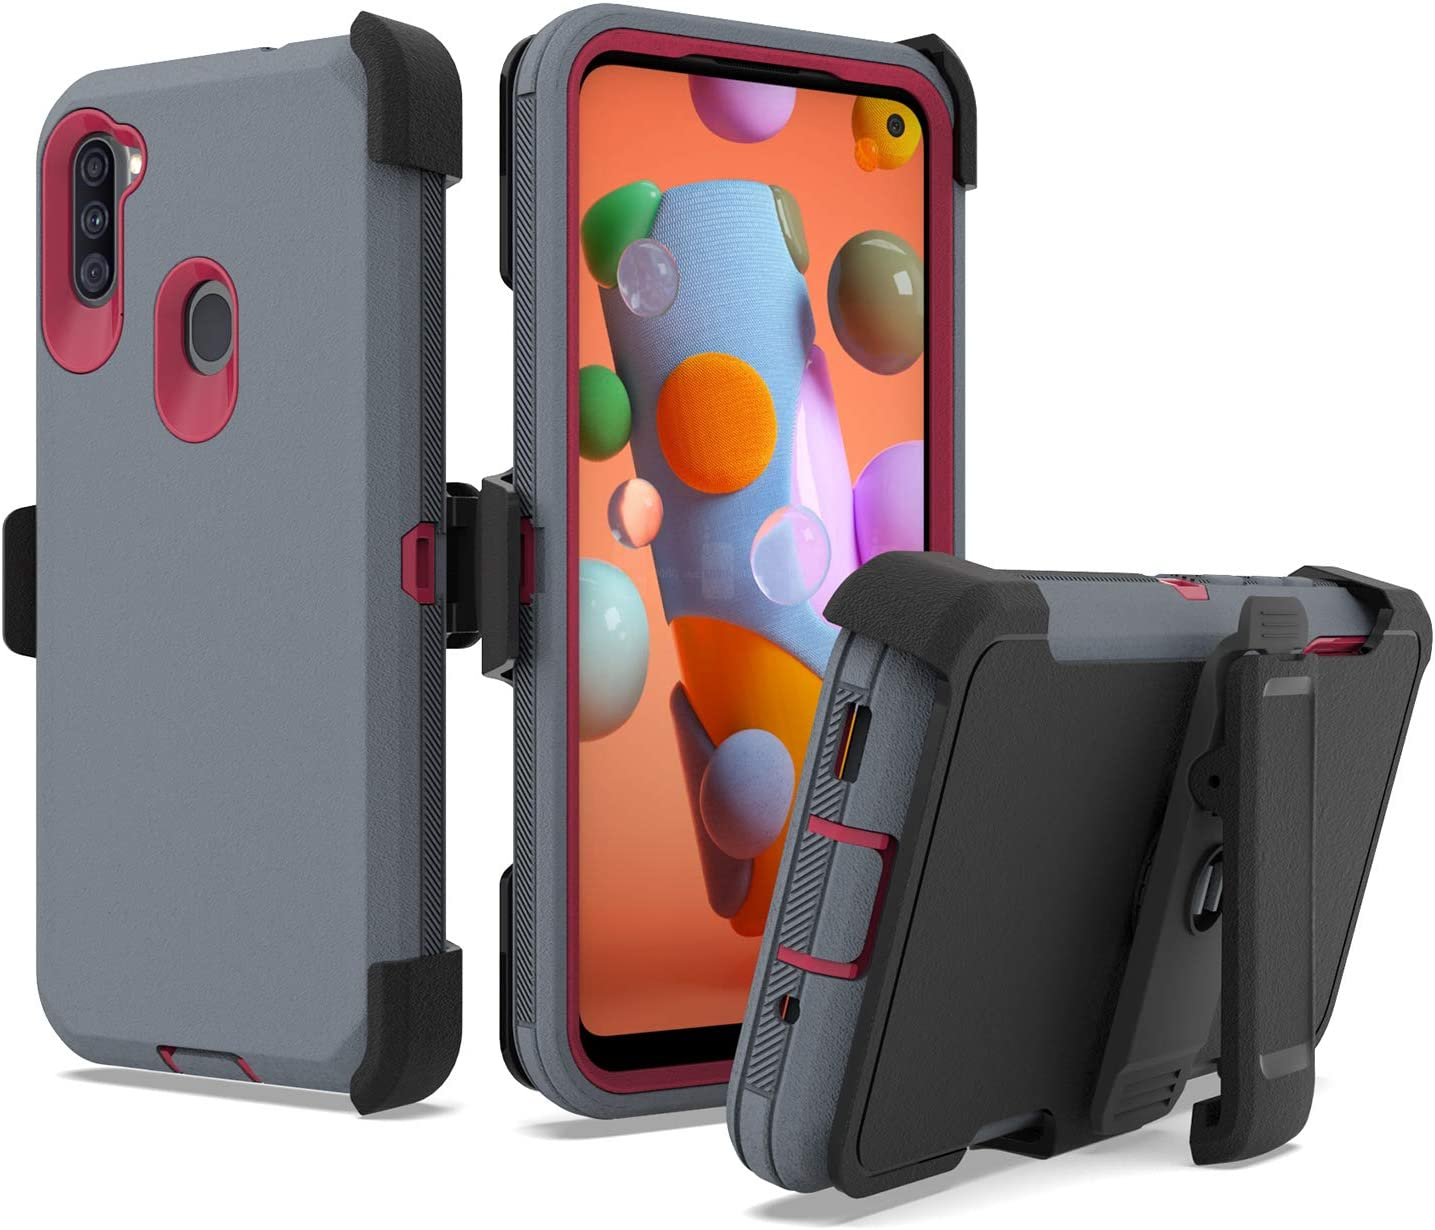 UNC Pro 3 in 1 Belt Clip Holster Cell Phone Case for Samsung Galaxy A11, Heavy Duty Hybrid Shockproof Bumper Case with Kickstand, Grey/Red